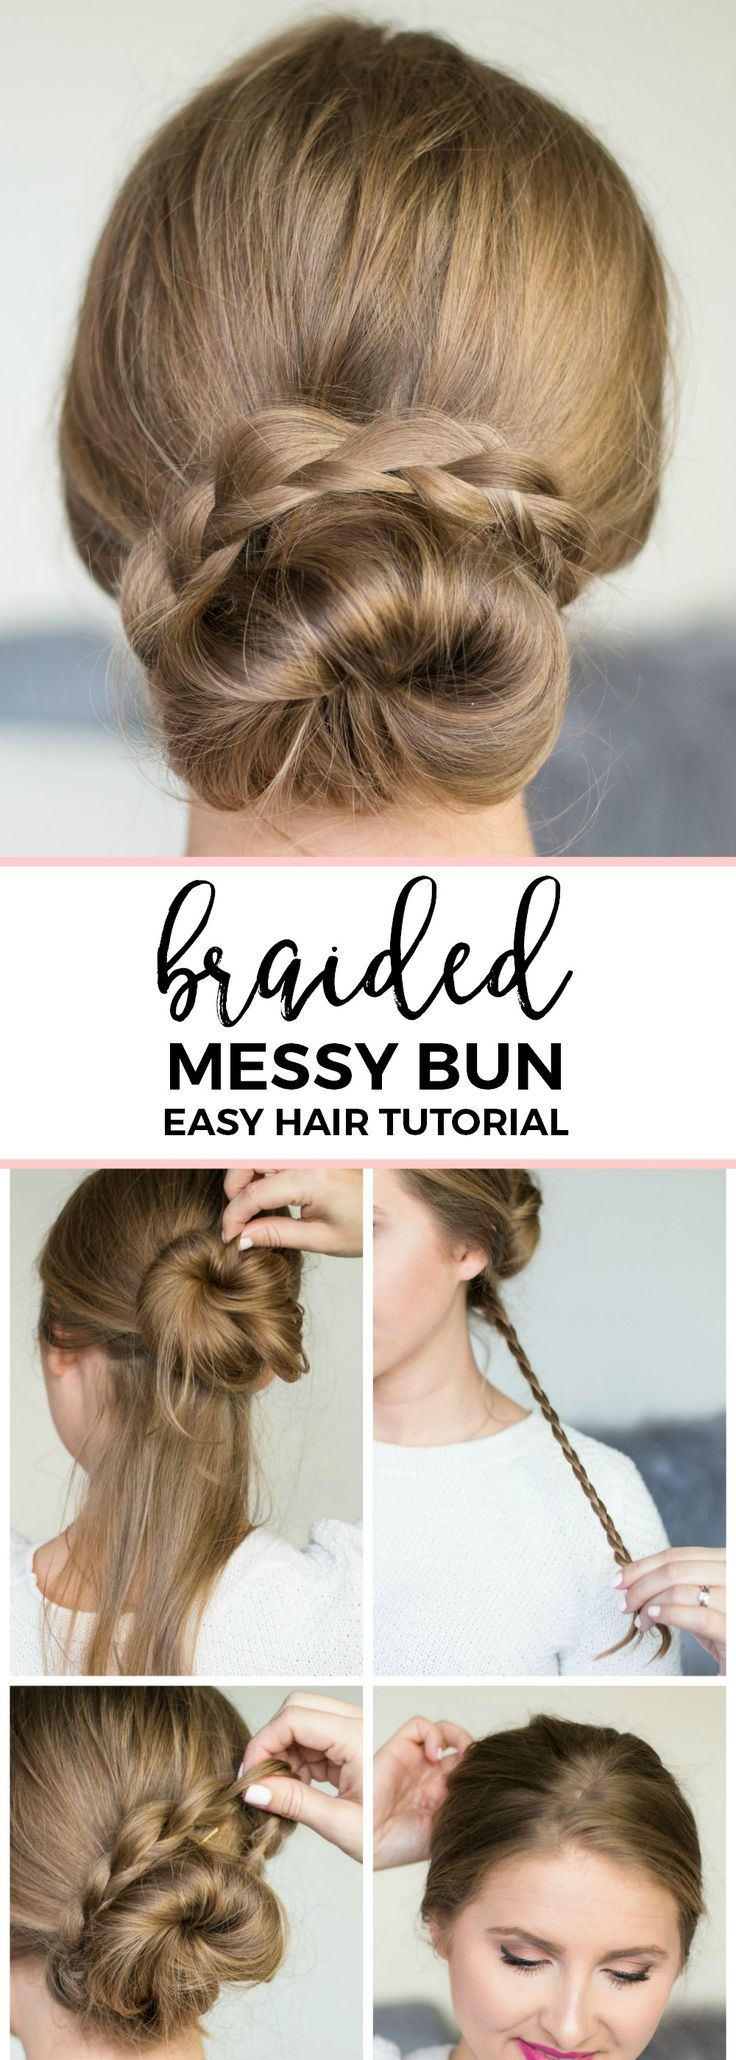 Perm for very short hair this epic perm really speaks for itself - Braided Messy Bun Hair Tutorial Quick And Easy No Heat Hairstyle Tutorials With